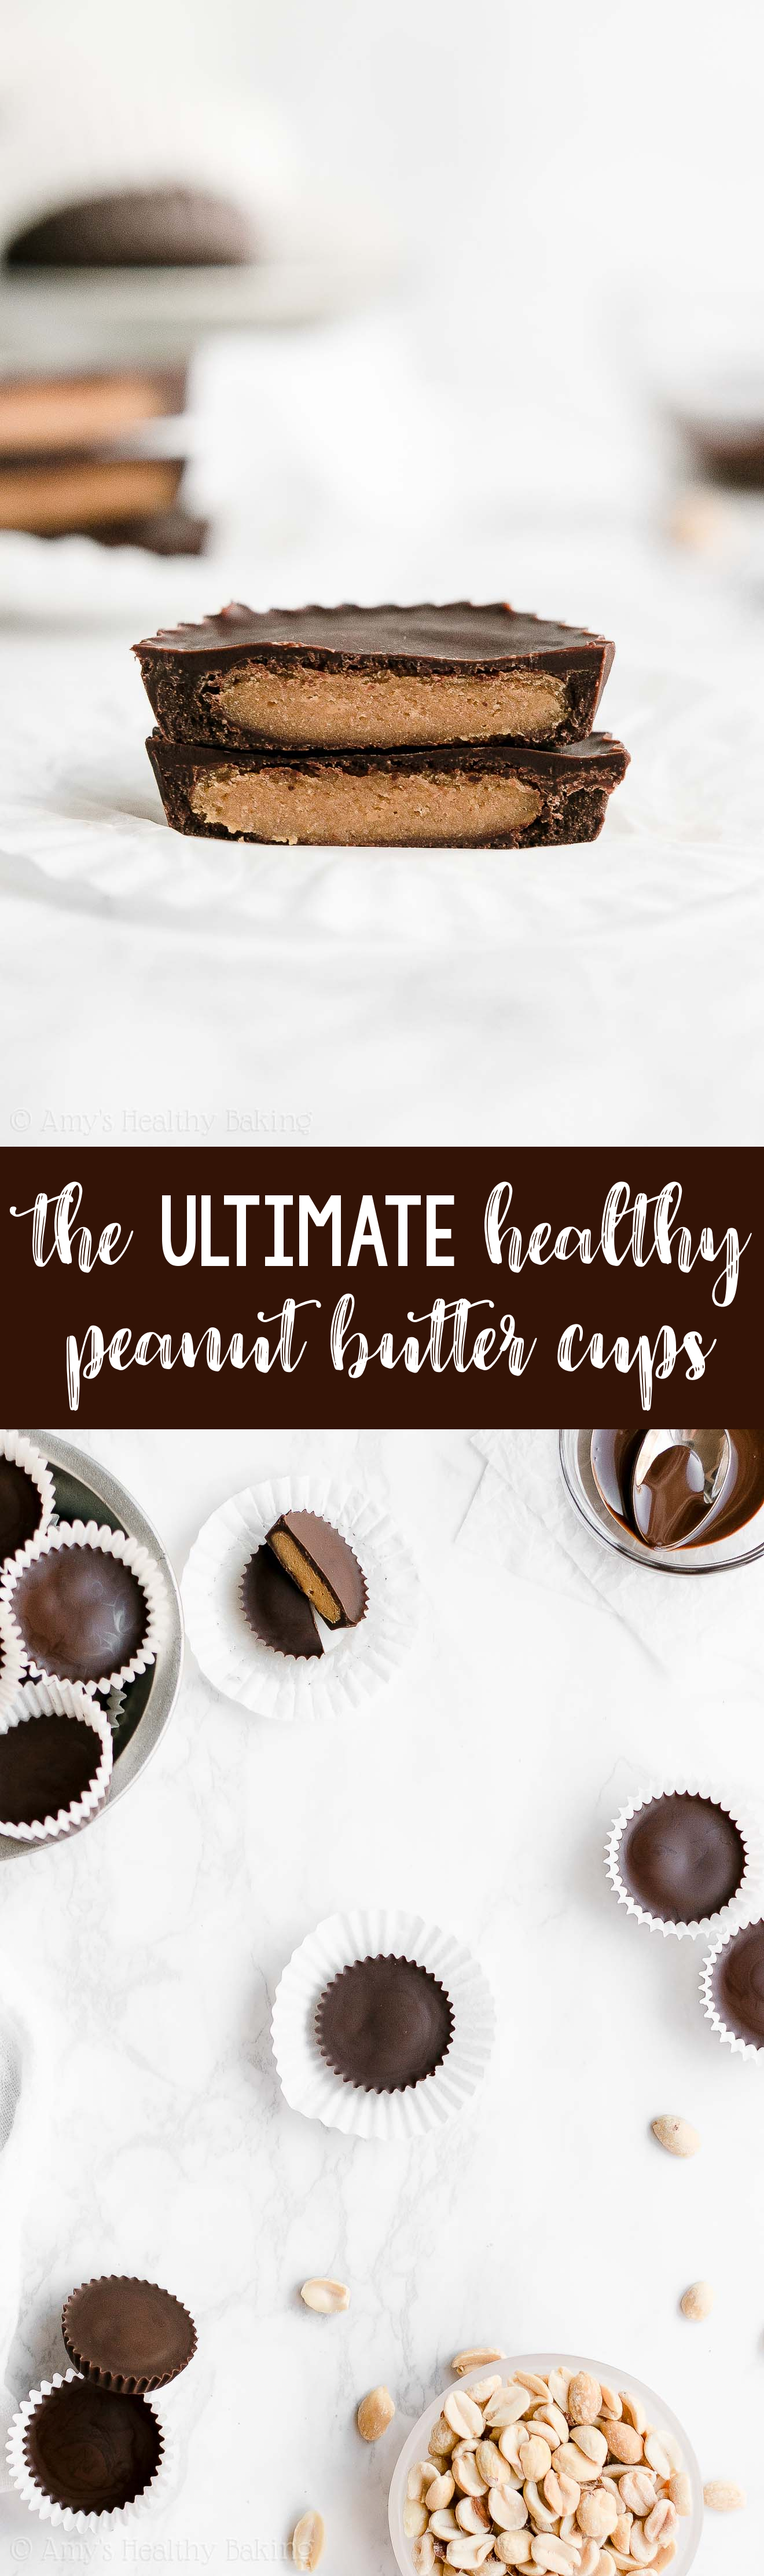 ULTIMATE Best Ever Healthy Clean Eating Dark Chocolate Peanut Butter Cups